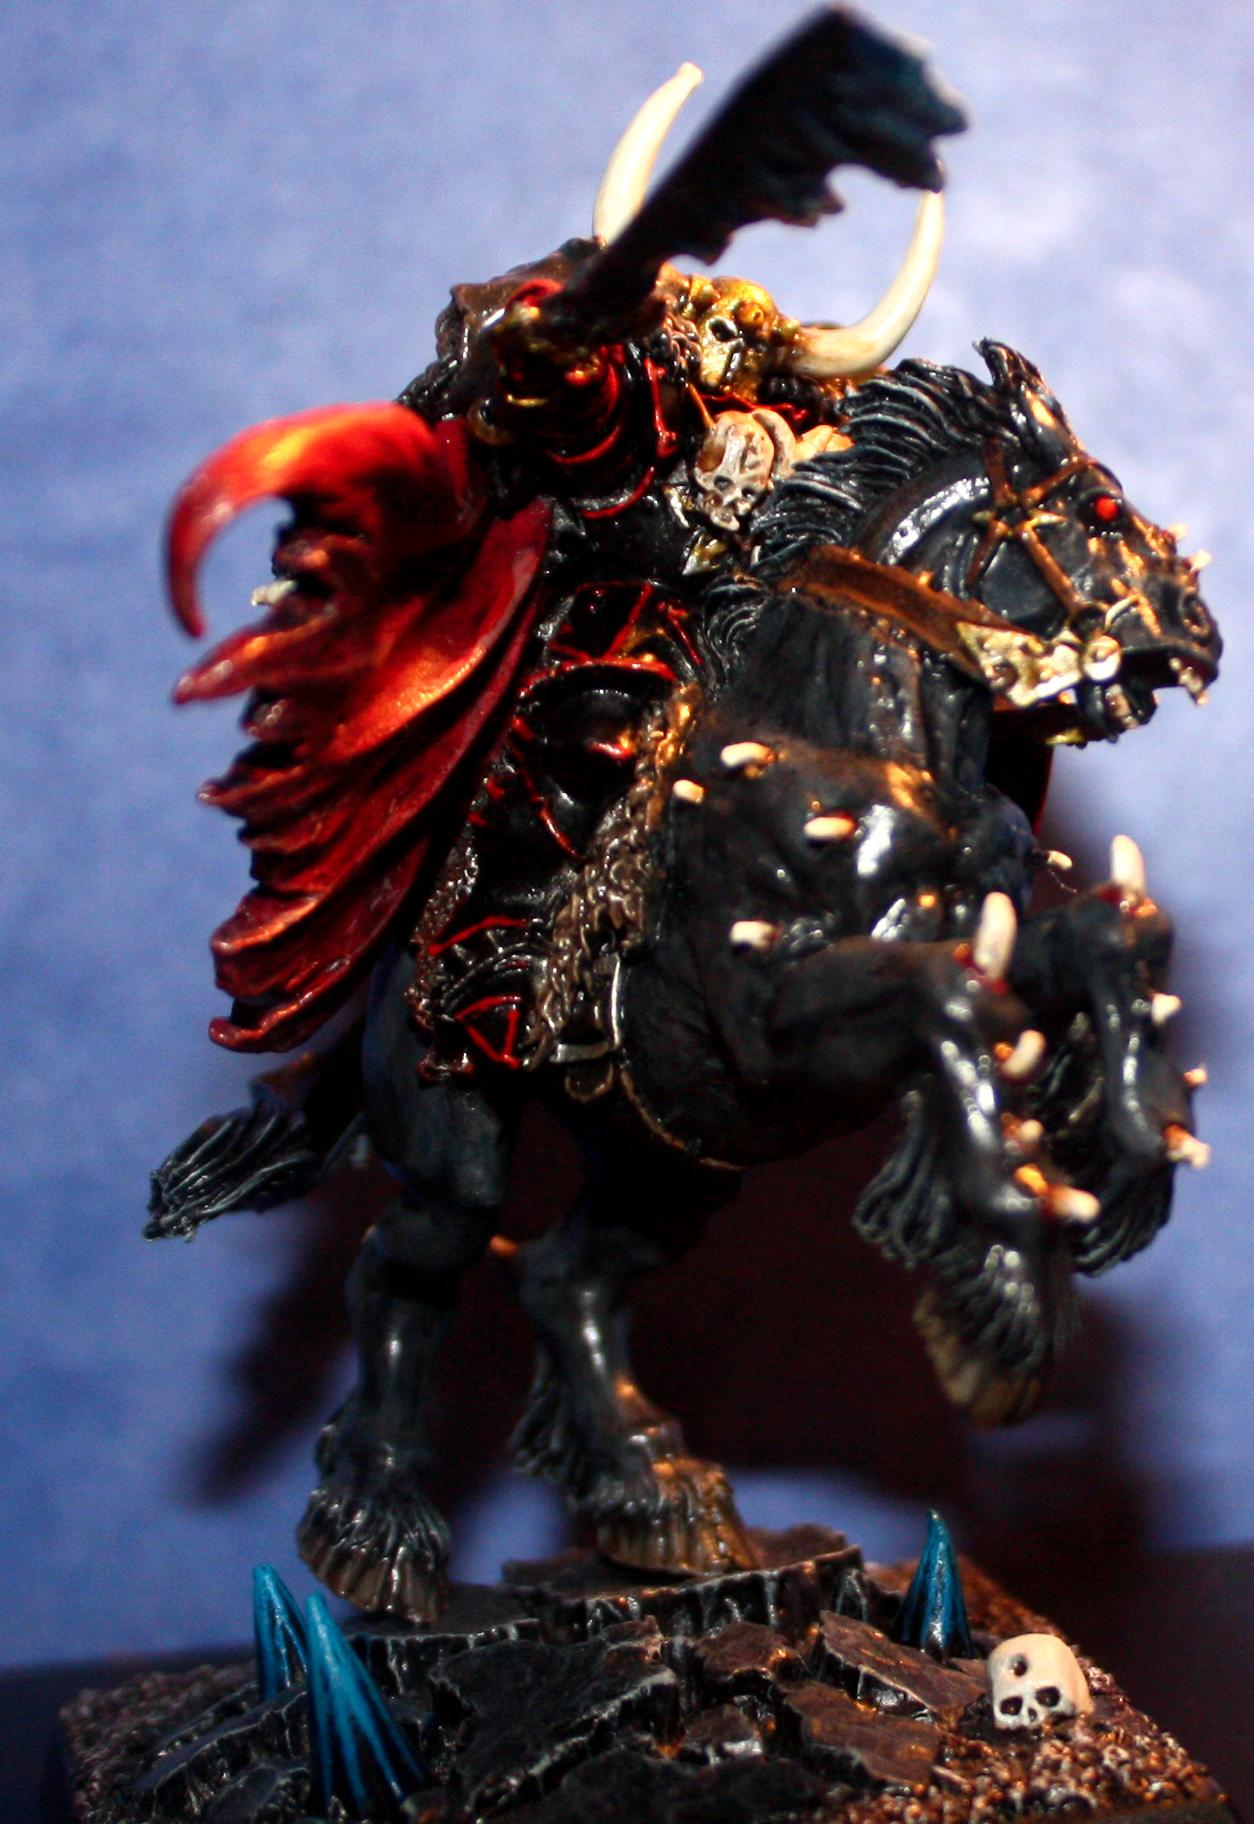 Archaon, Chaos, Converting, End, Lord, Of, Painting, Sweden, The, Times, Toerri, Warhammer Fantasy, Weaponswap